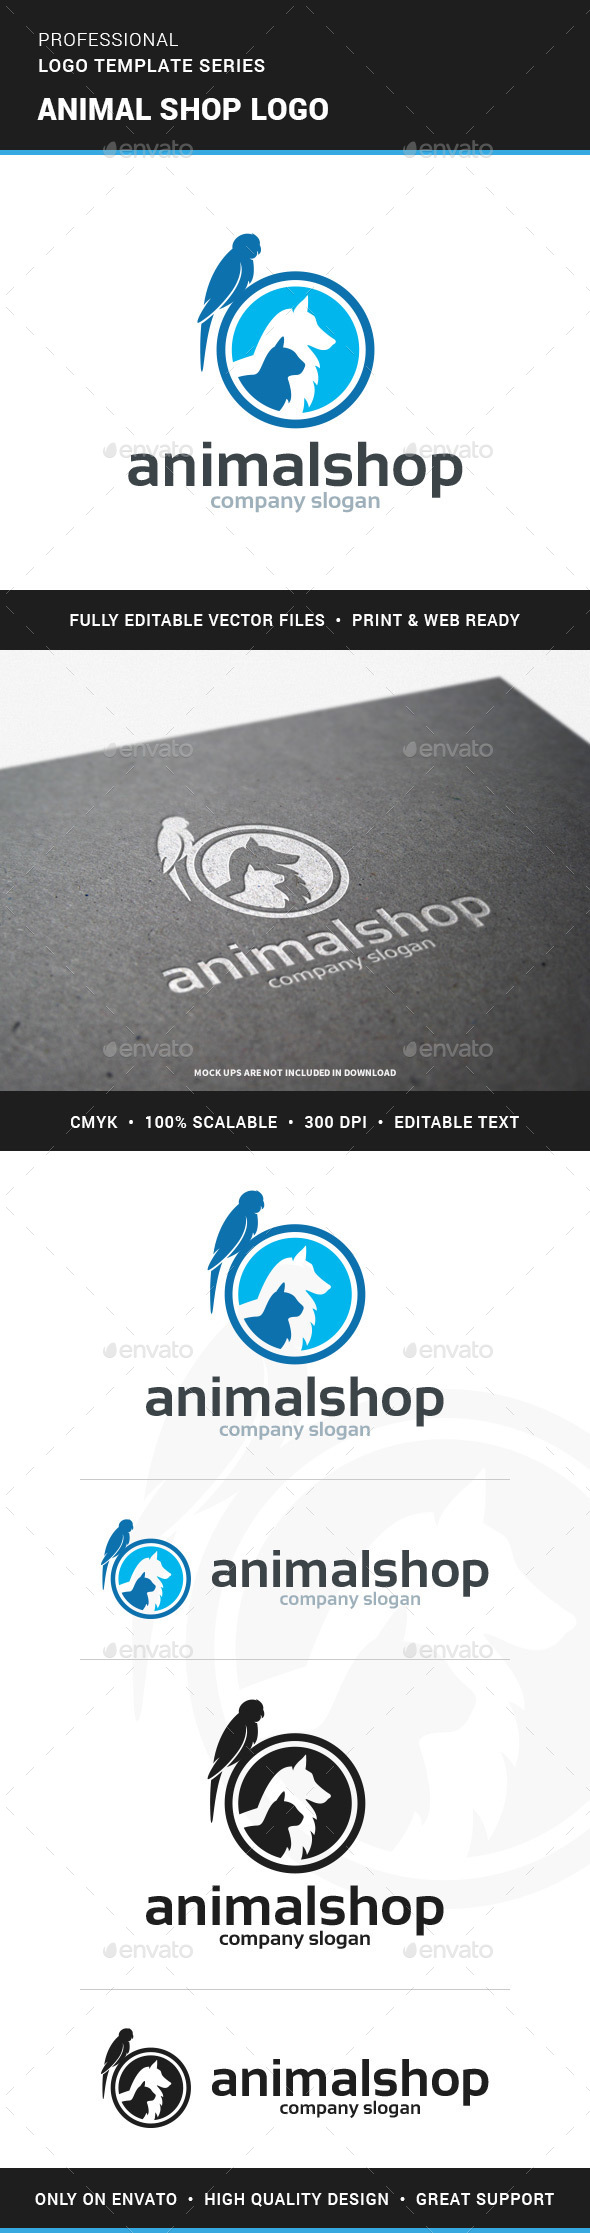 Animal Shop Logo Template